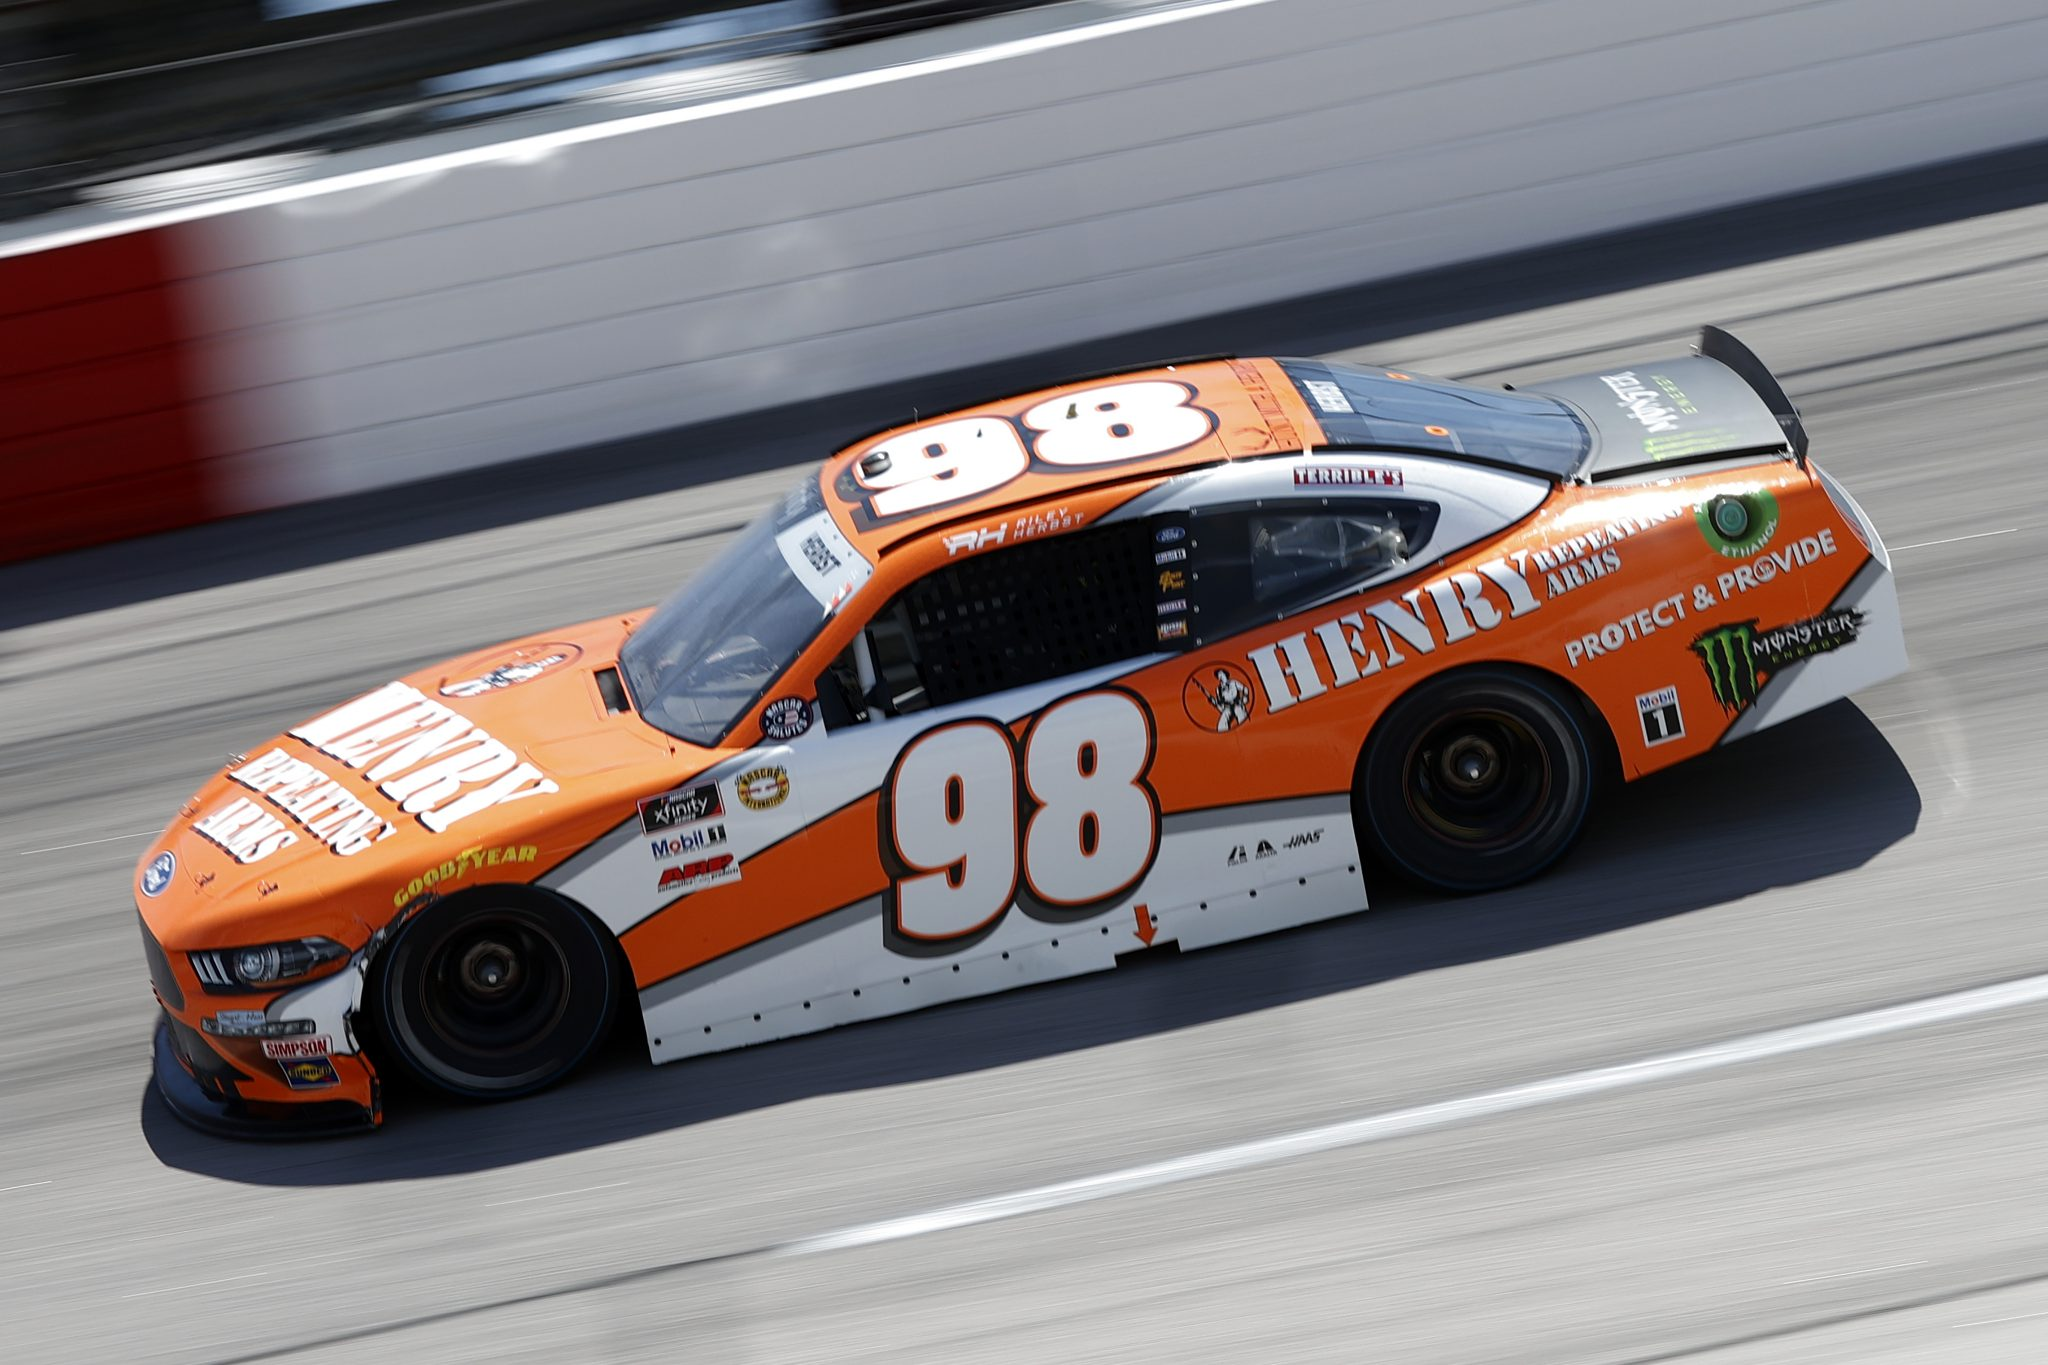 DARLINGTON, SOUTH CAROLINA - MAY 08: Riley Herbst, driver of the #98 Henry Repeating Arms Ford, drives during the NASCAR Xfinity Series Steakhouse Elite 200 at Darlington Raceway on May 08, 2021 in Darlington, South Carolina. (Photo by Chris Graythen/Getty Images) | Getty Images